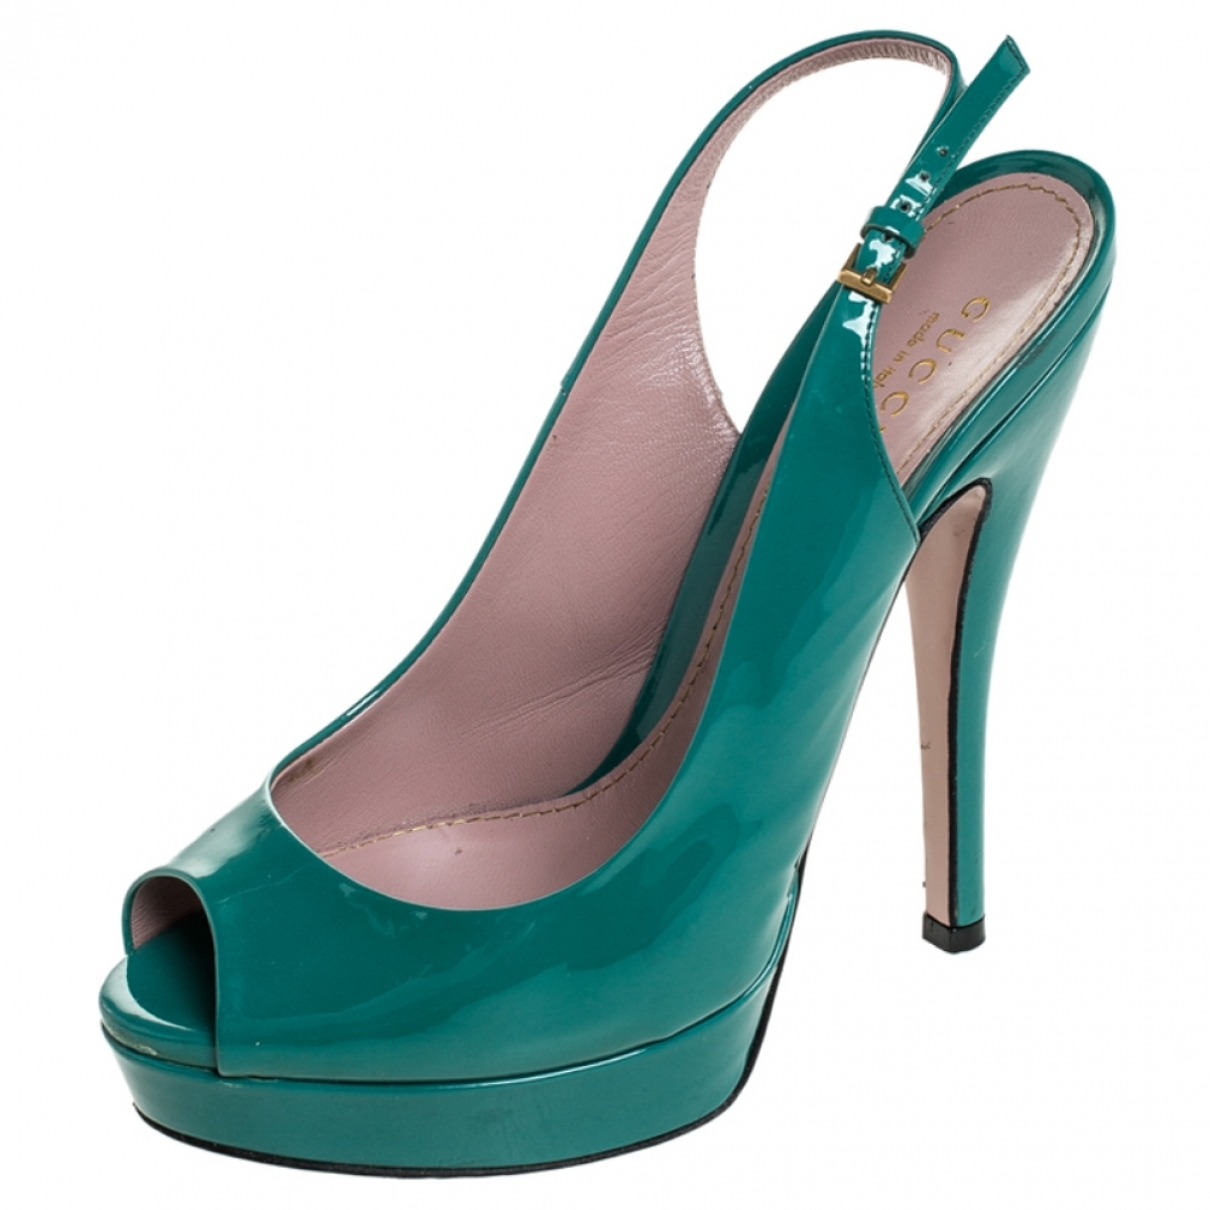 Gucci \N Blue Patent leather Heels for Women 5.5 US